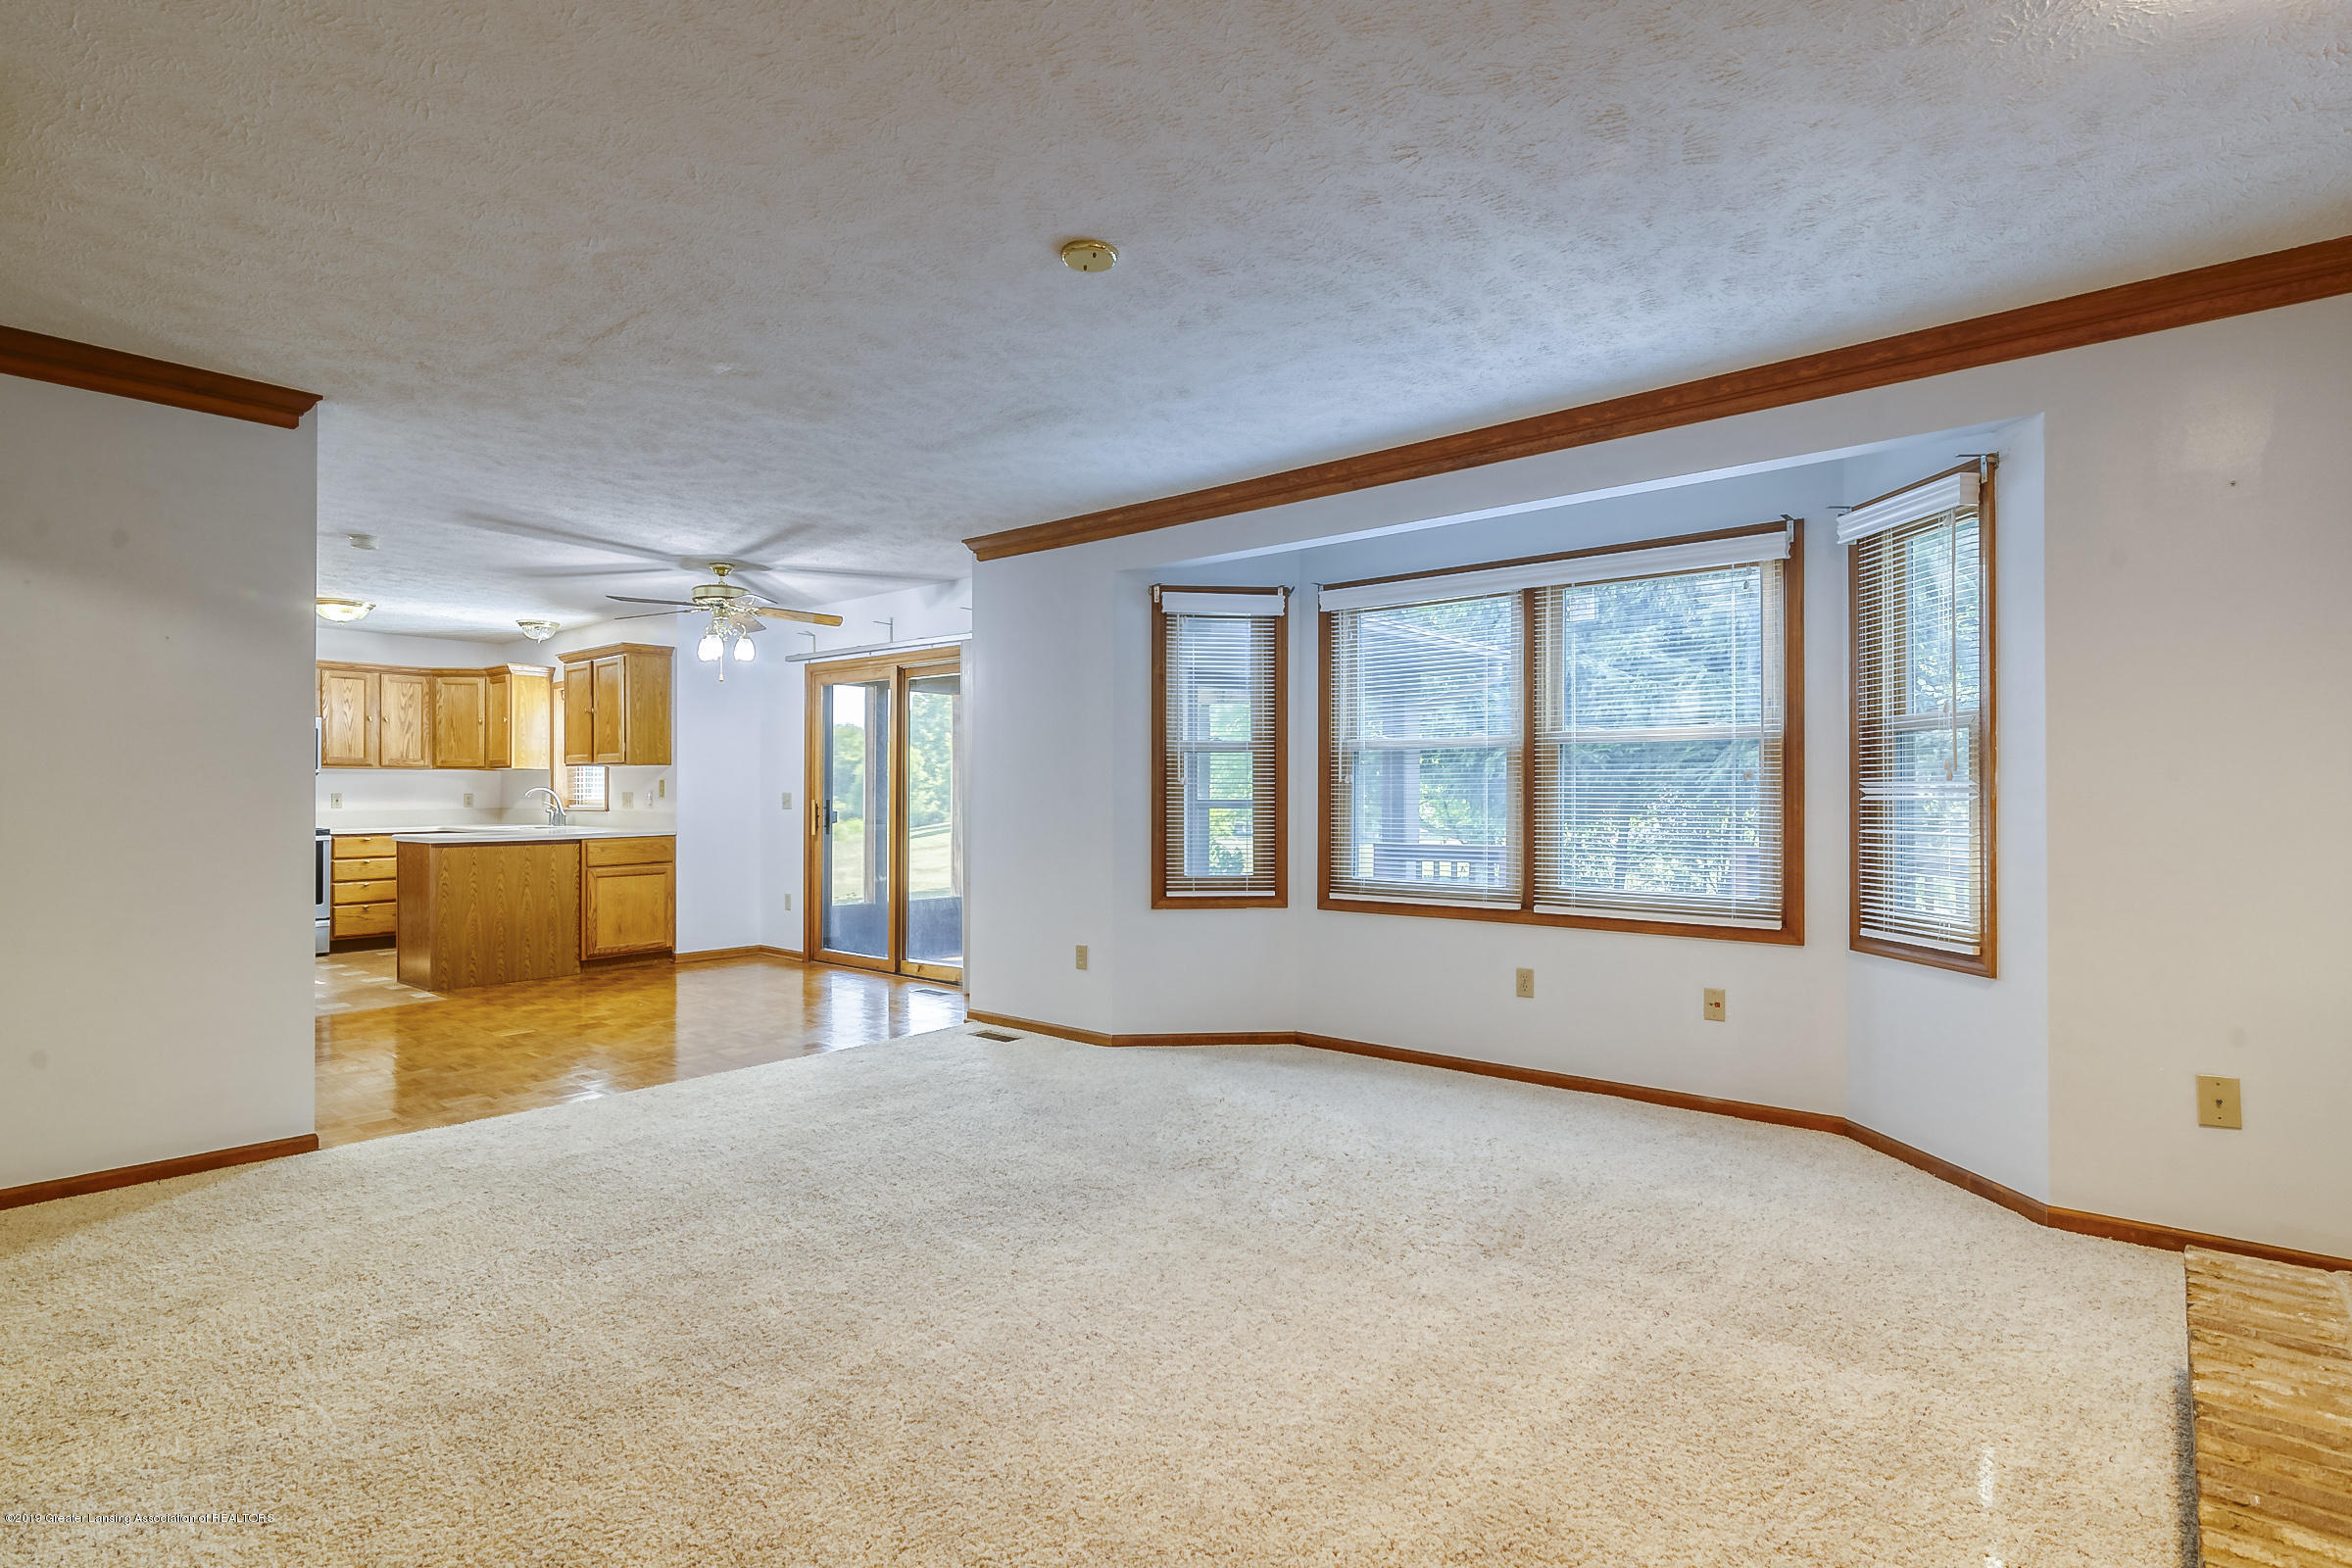 2343 Chisholm Ct - LIVING ROOM - 4